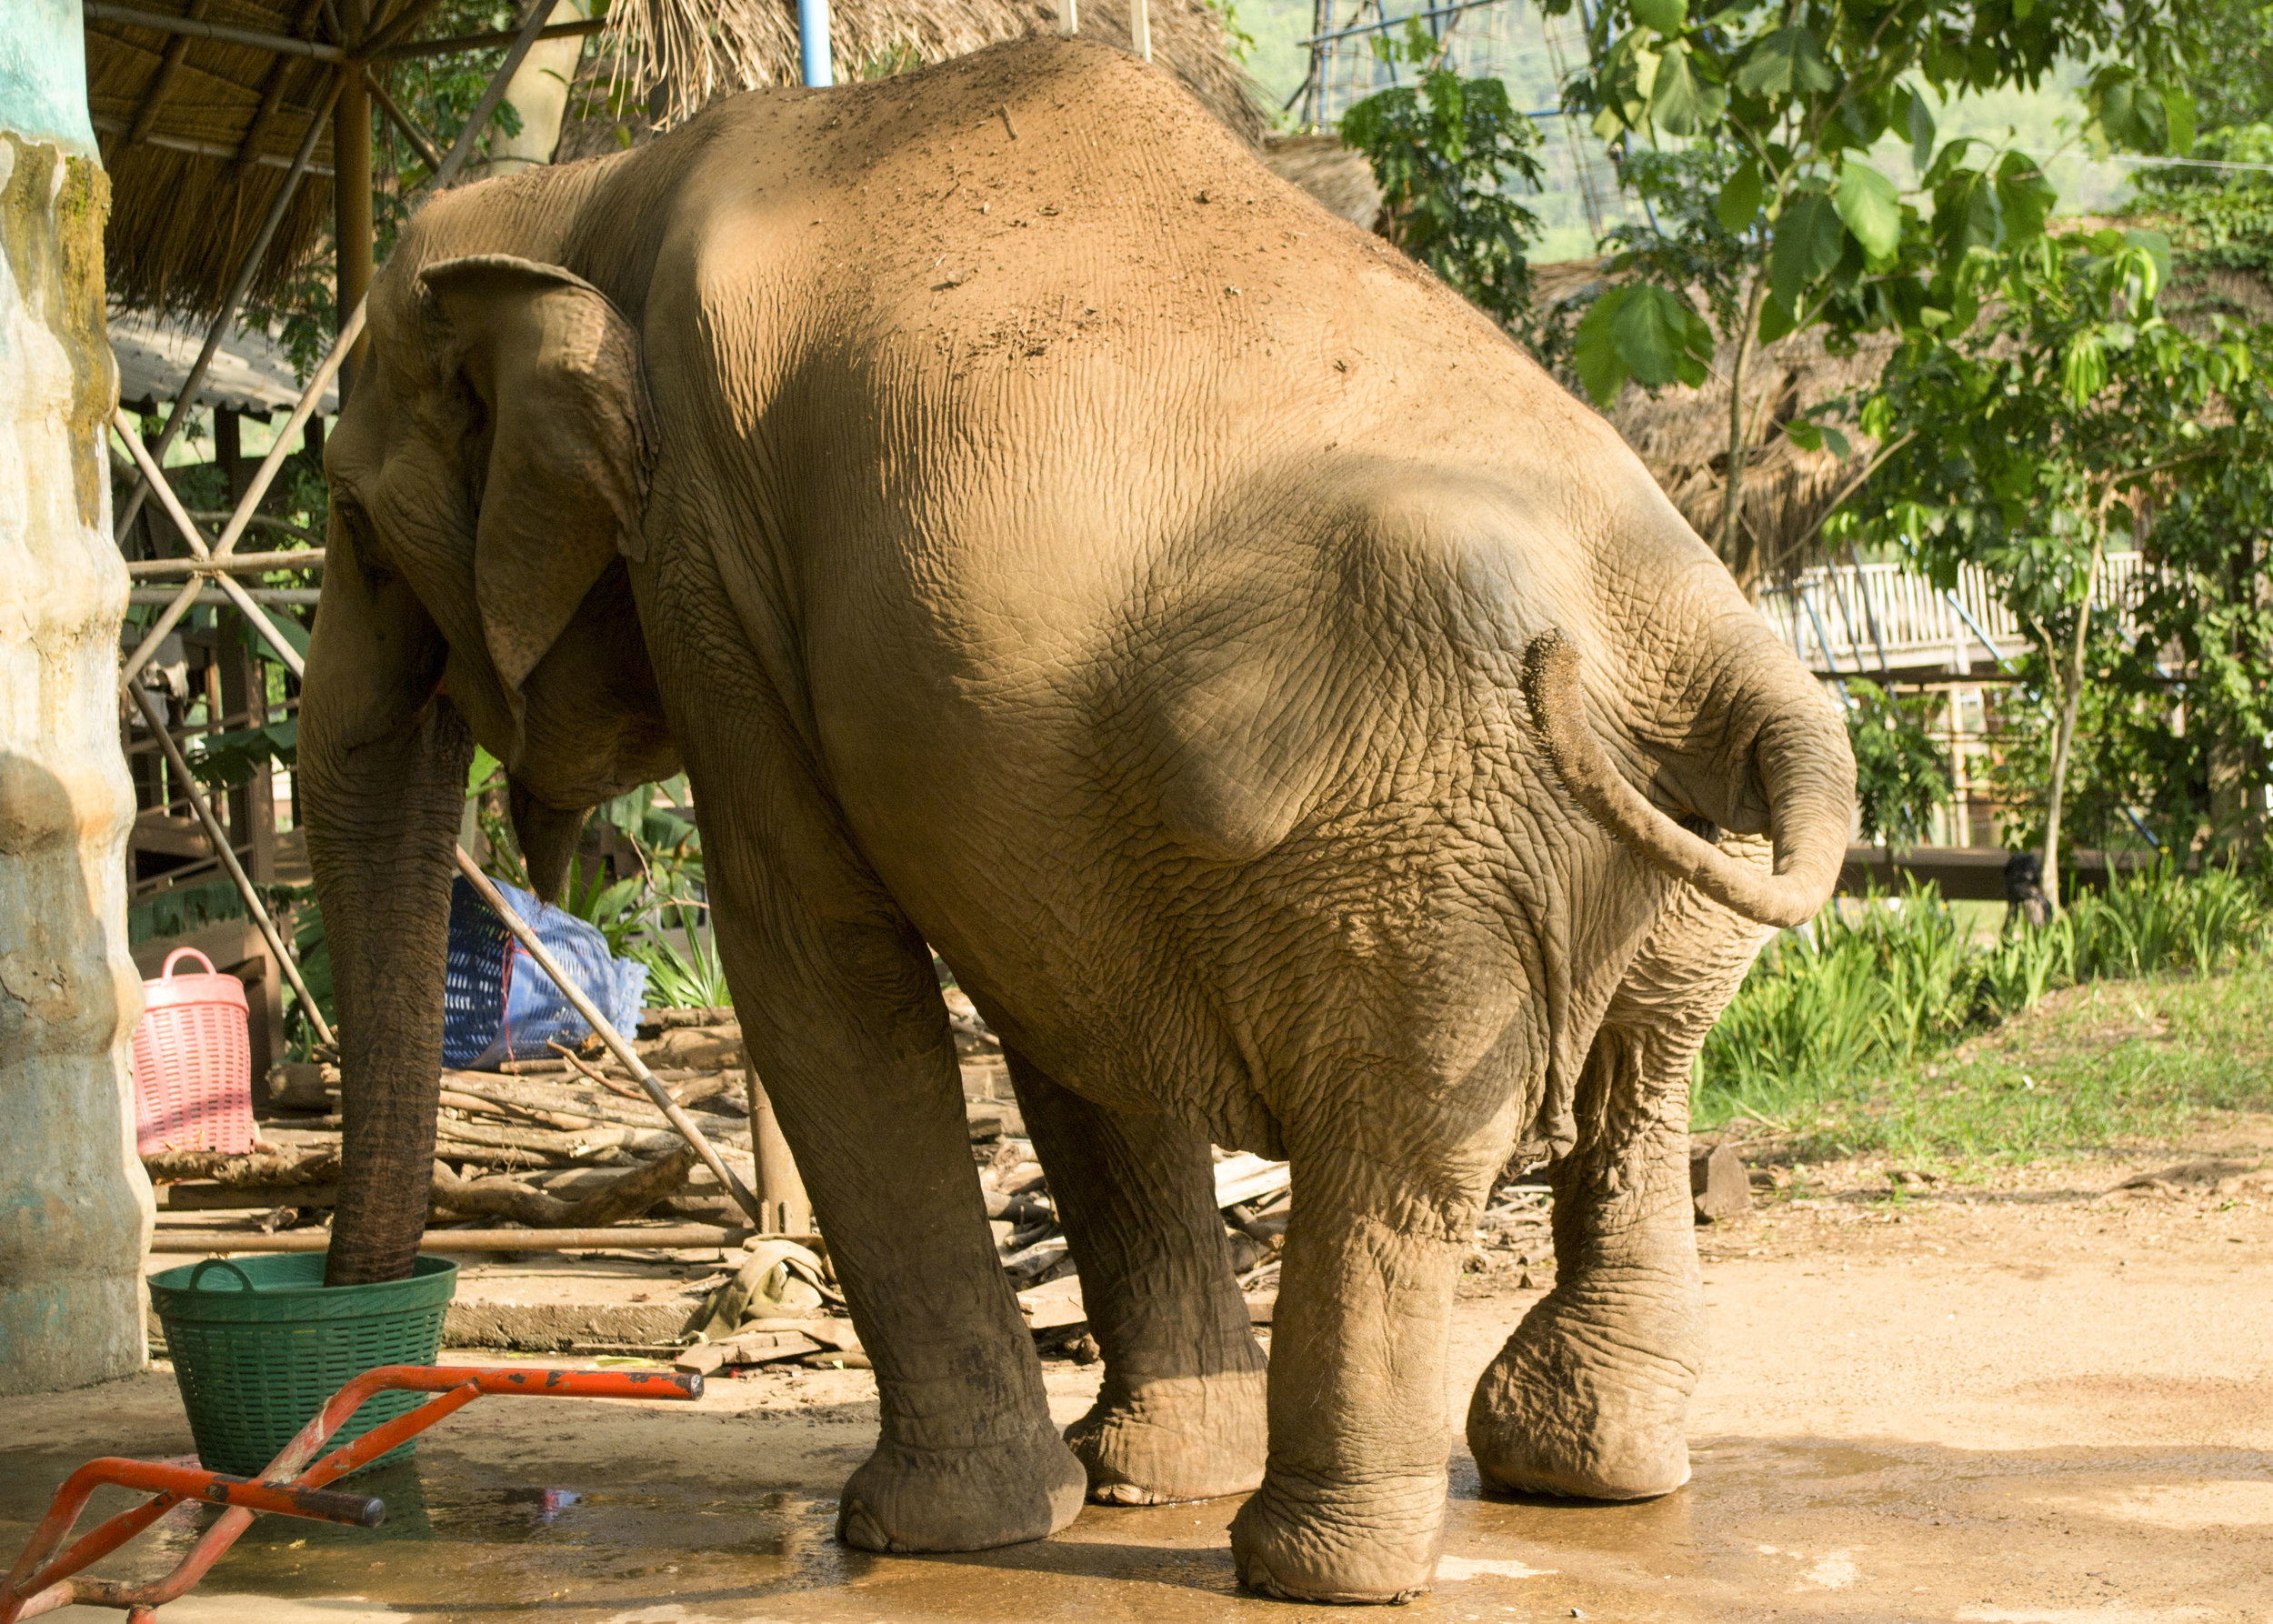 A crippled rescued elephant is now living the rest of her life at Elephant Nature Park. Photo by Karoline Hood